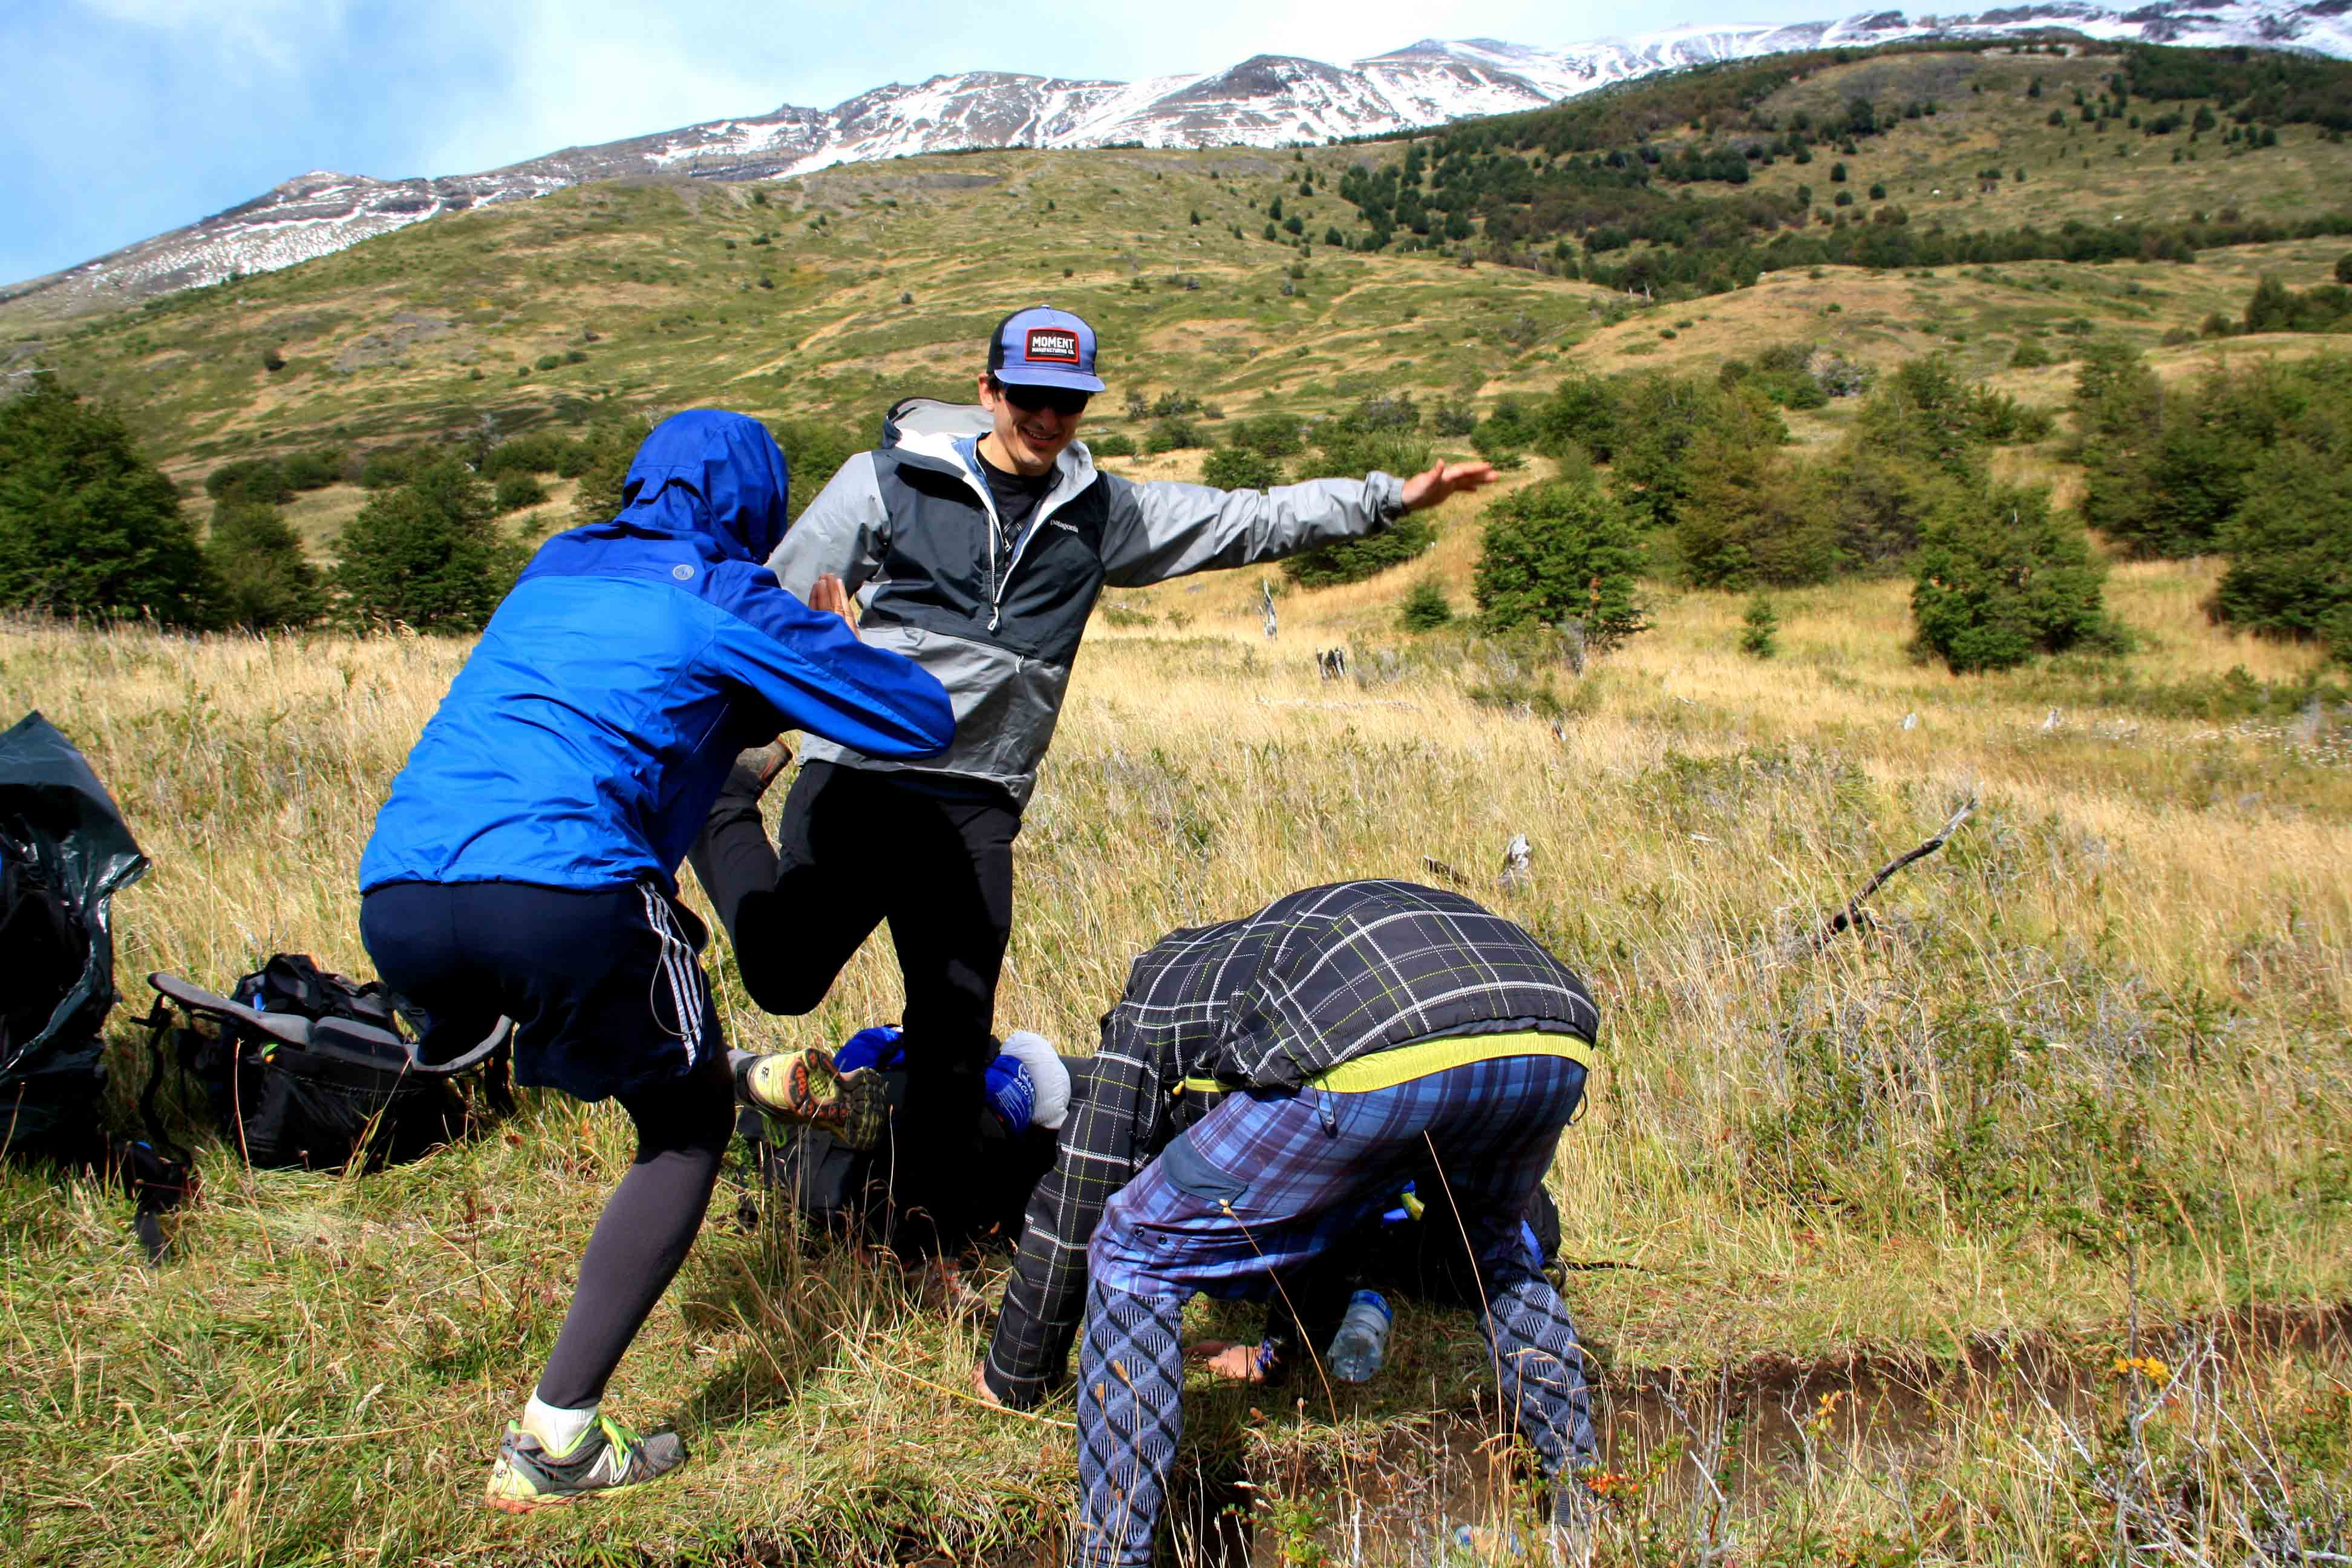 Stretching torres del paine